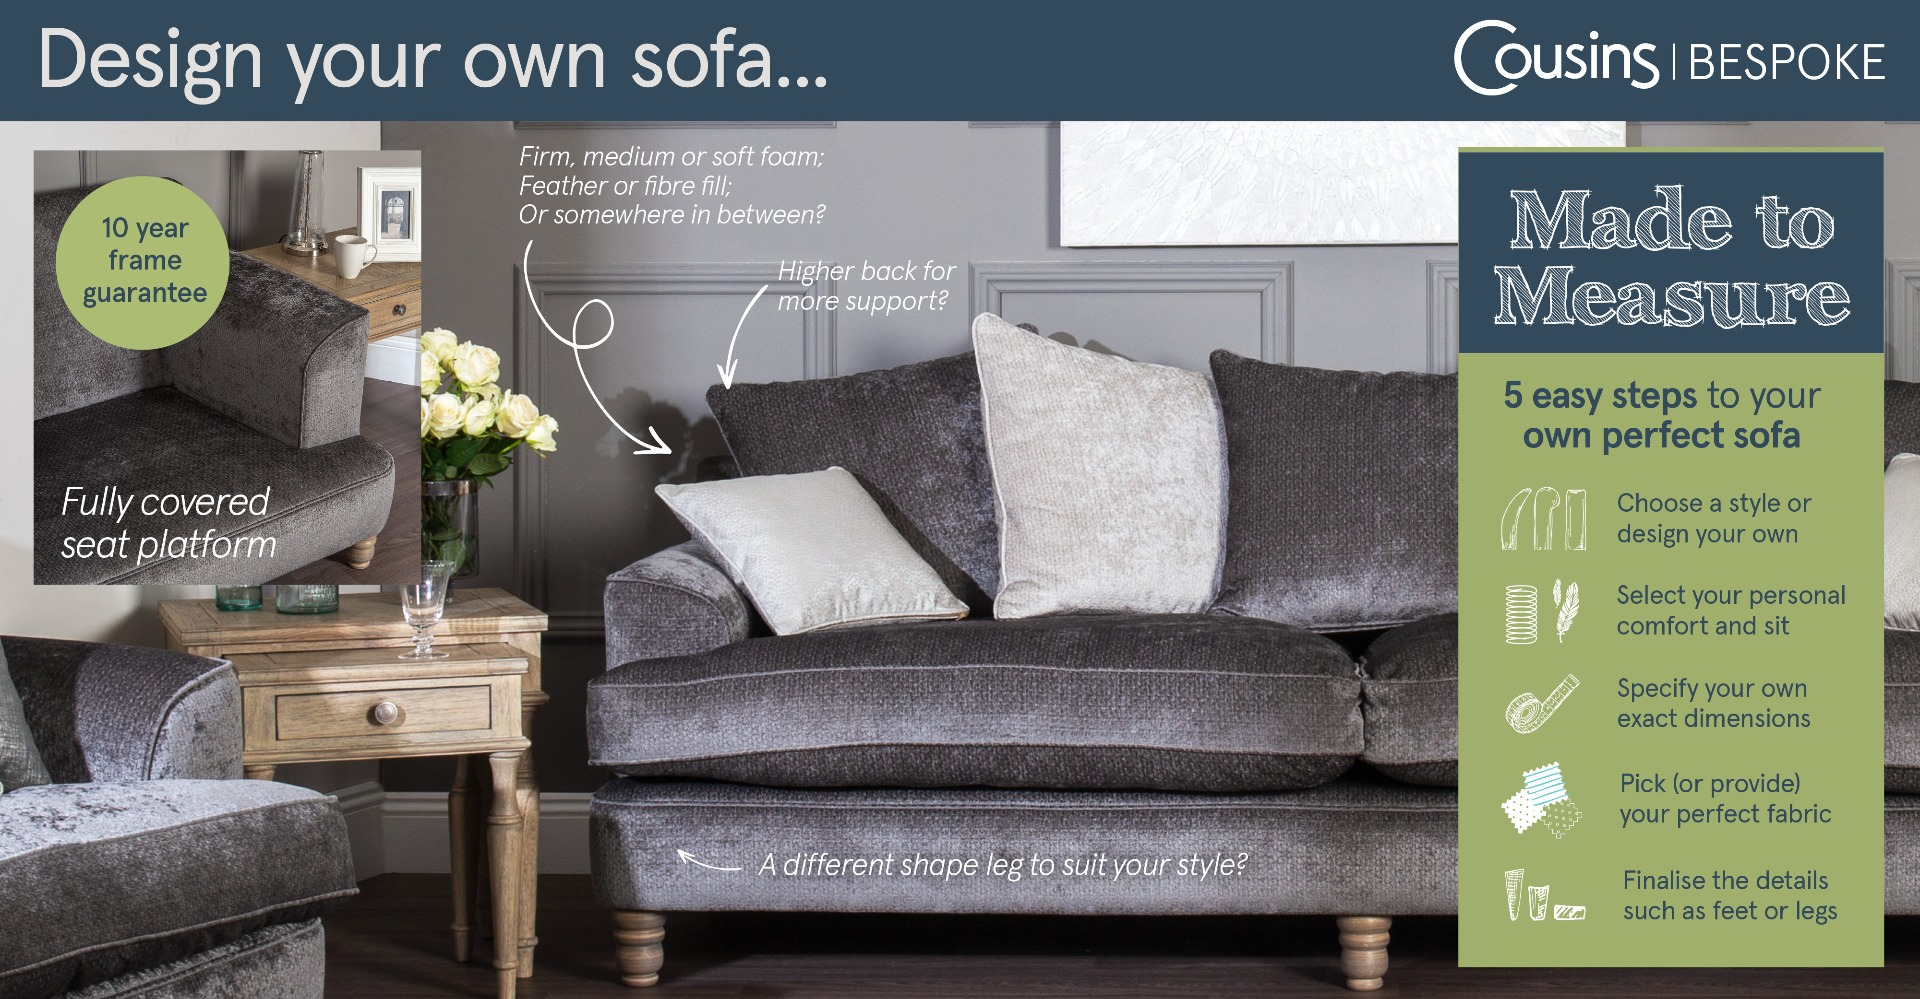 Cool Cousins Furniture Shop Sofas Dining Bedroom And Accessories Download Free Architecture Designs Embacsunscenecom